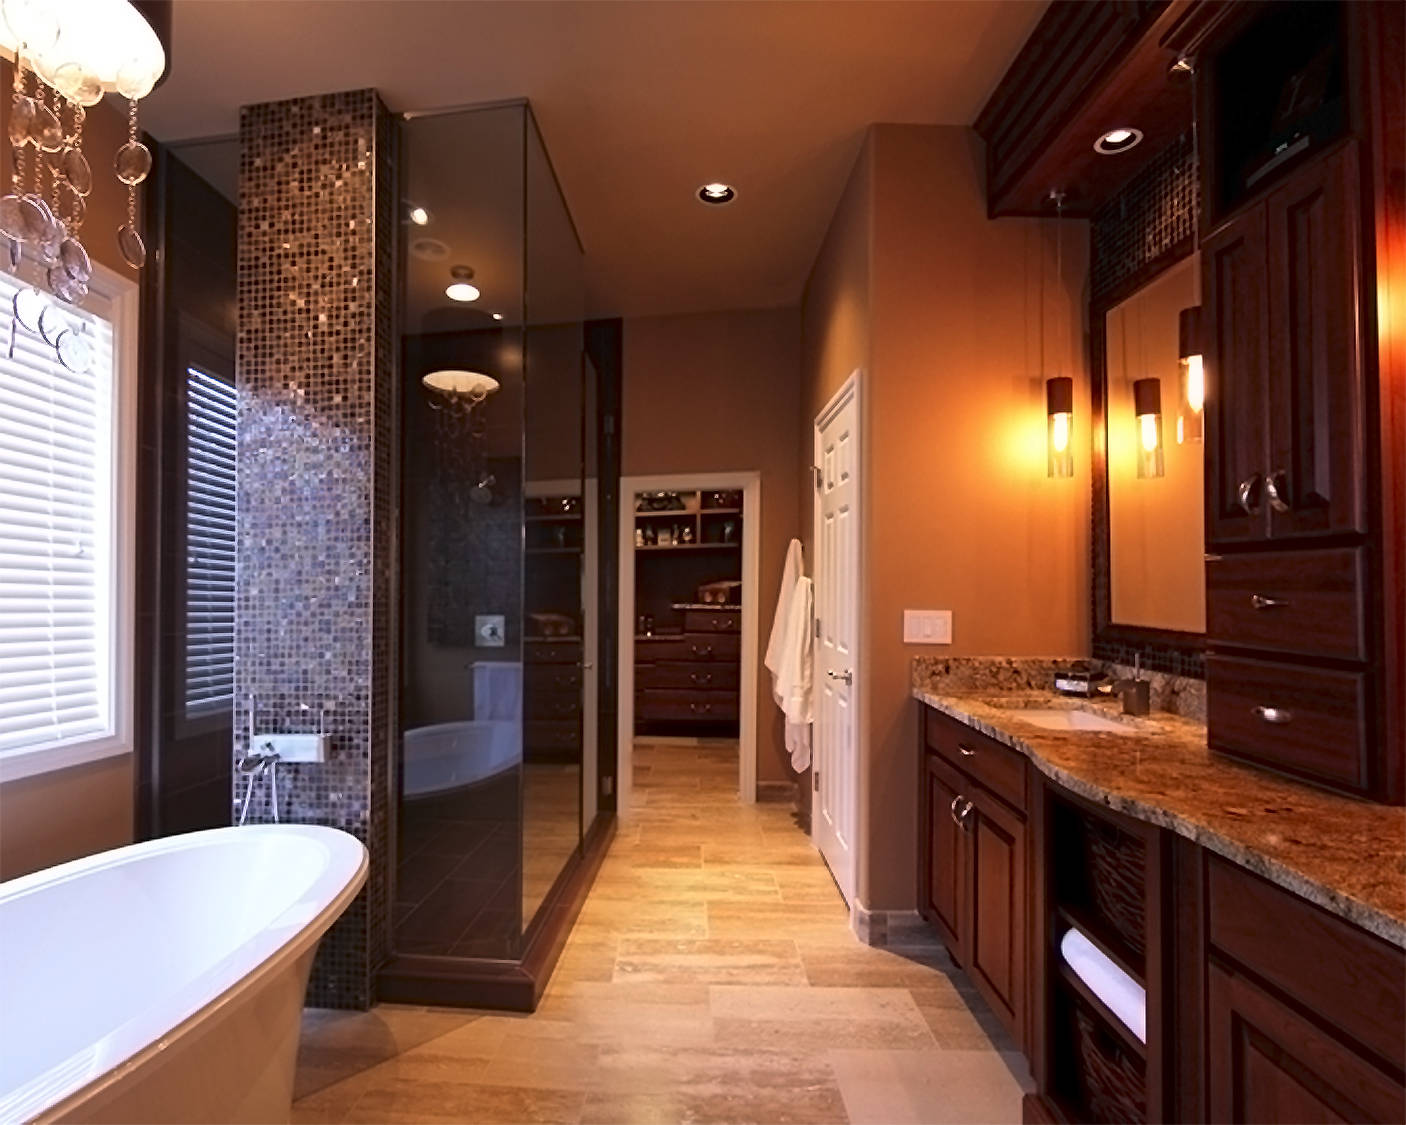 Http Www Selinconstruction Com Content Portfolio Items Bathroom Remodel